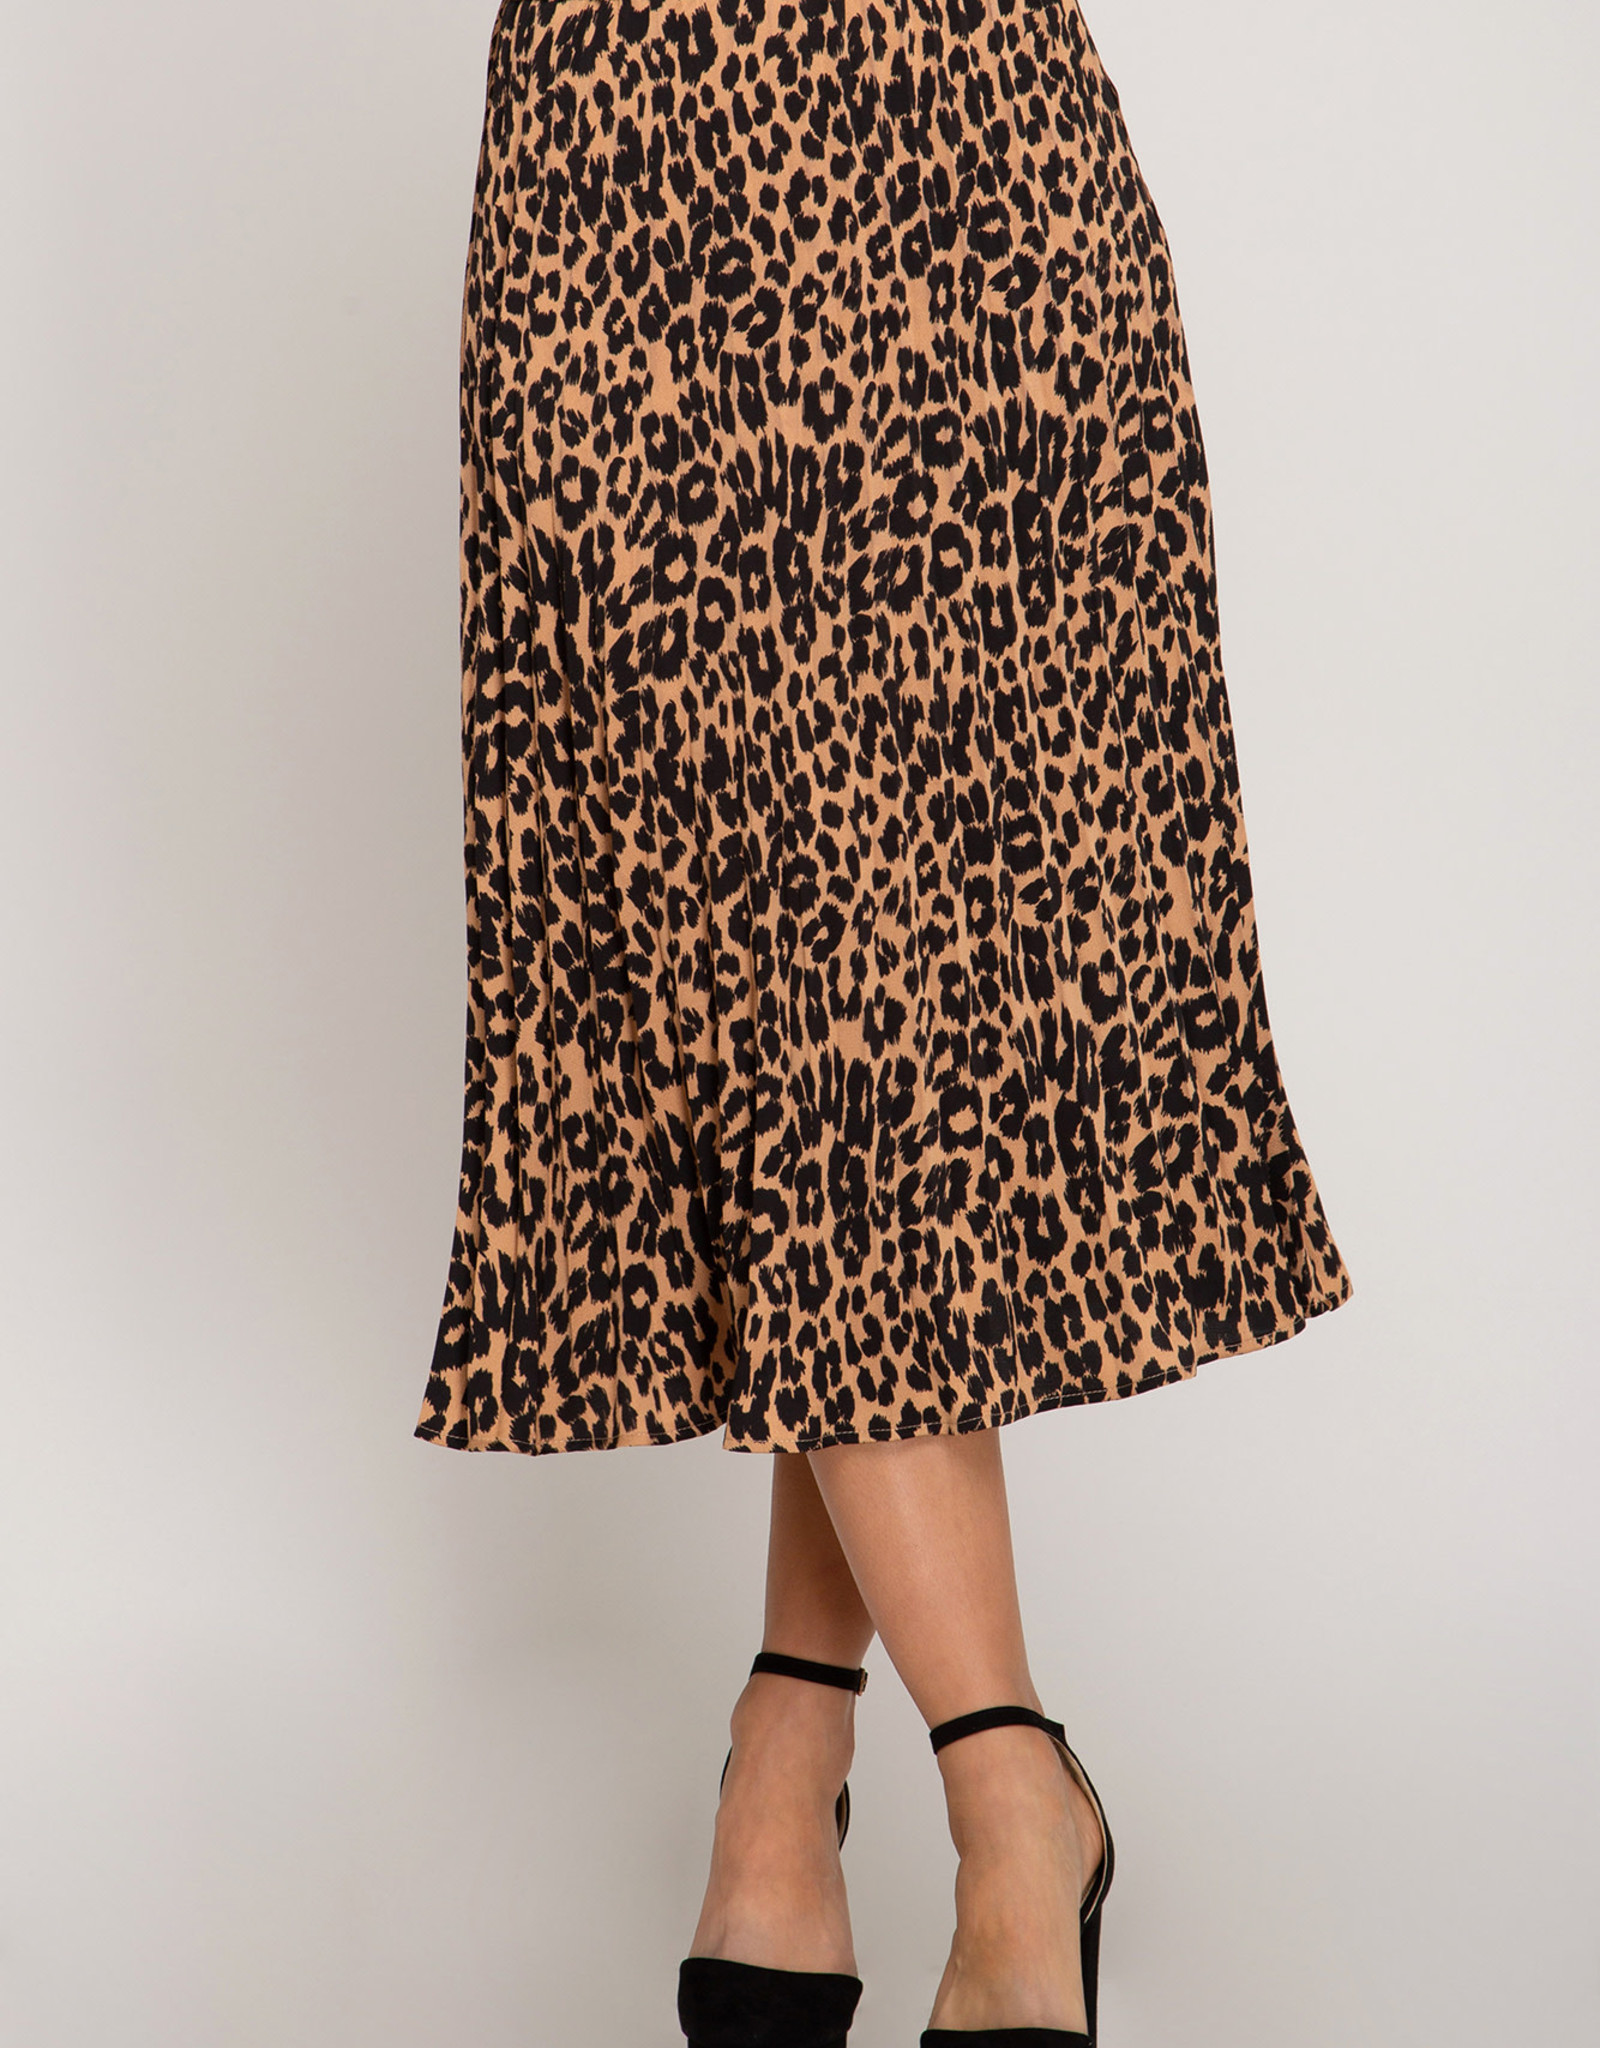 LeBLANC finds MIDI LEOPARD Skirt